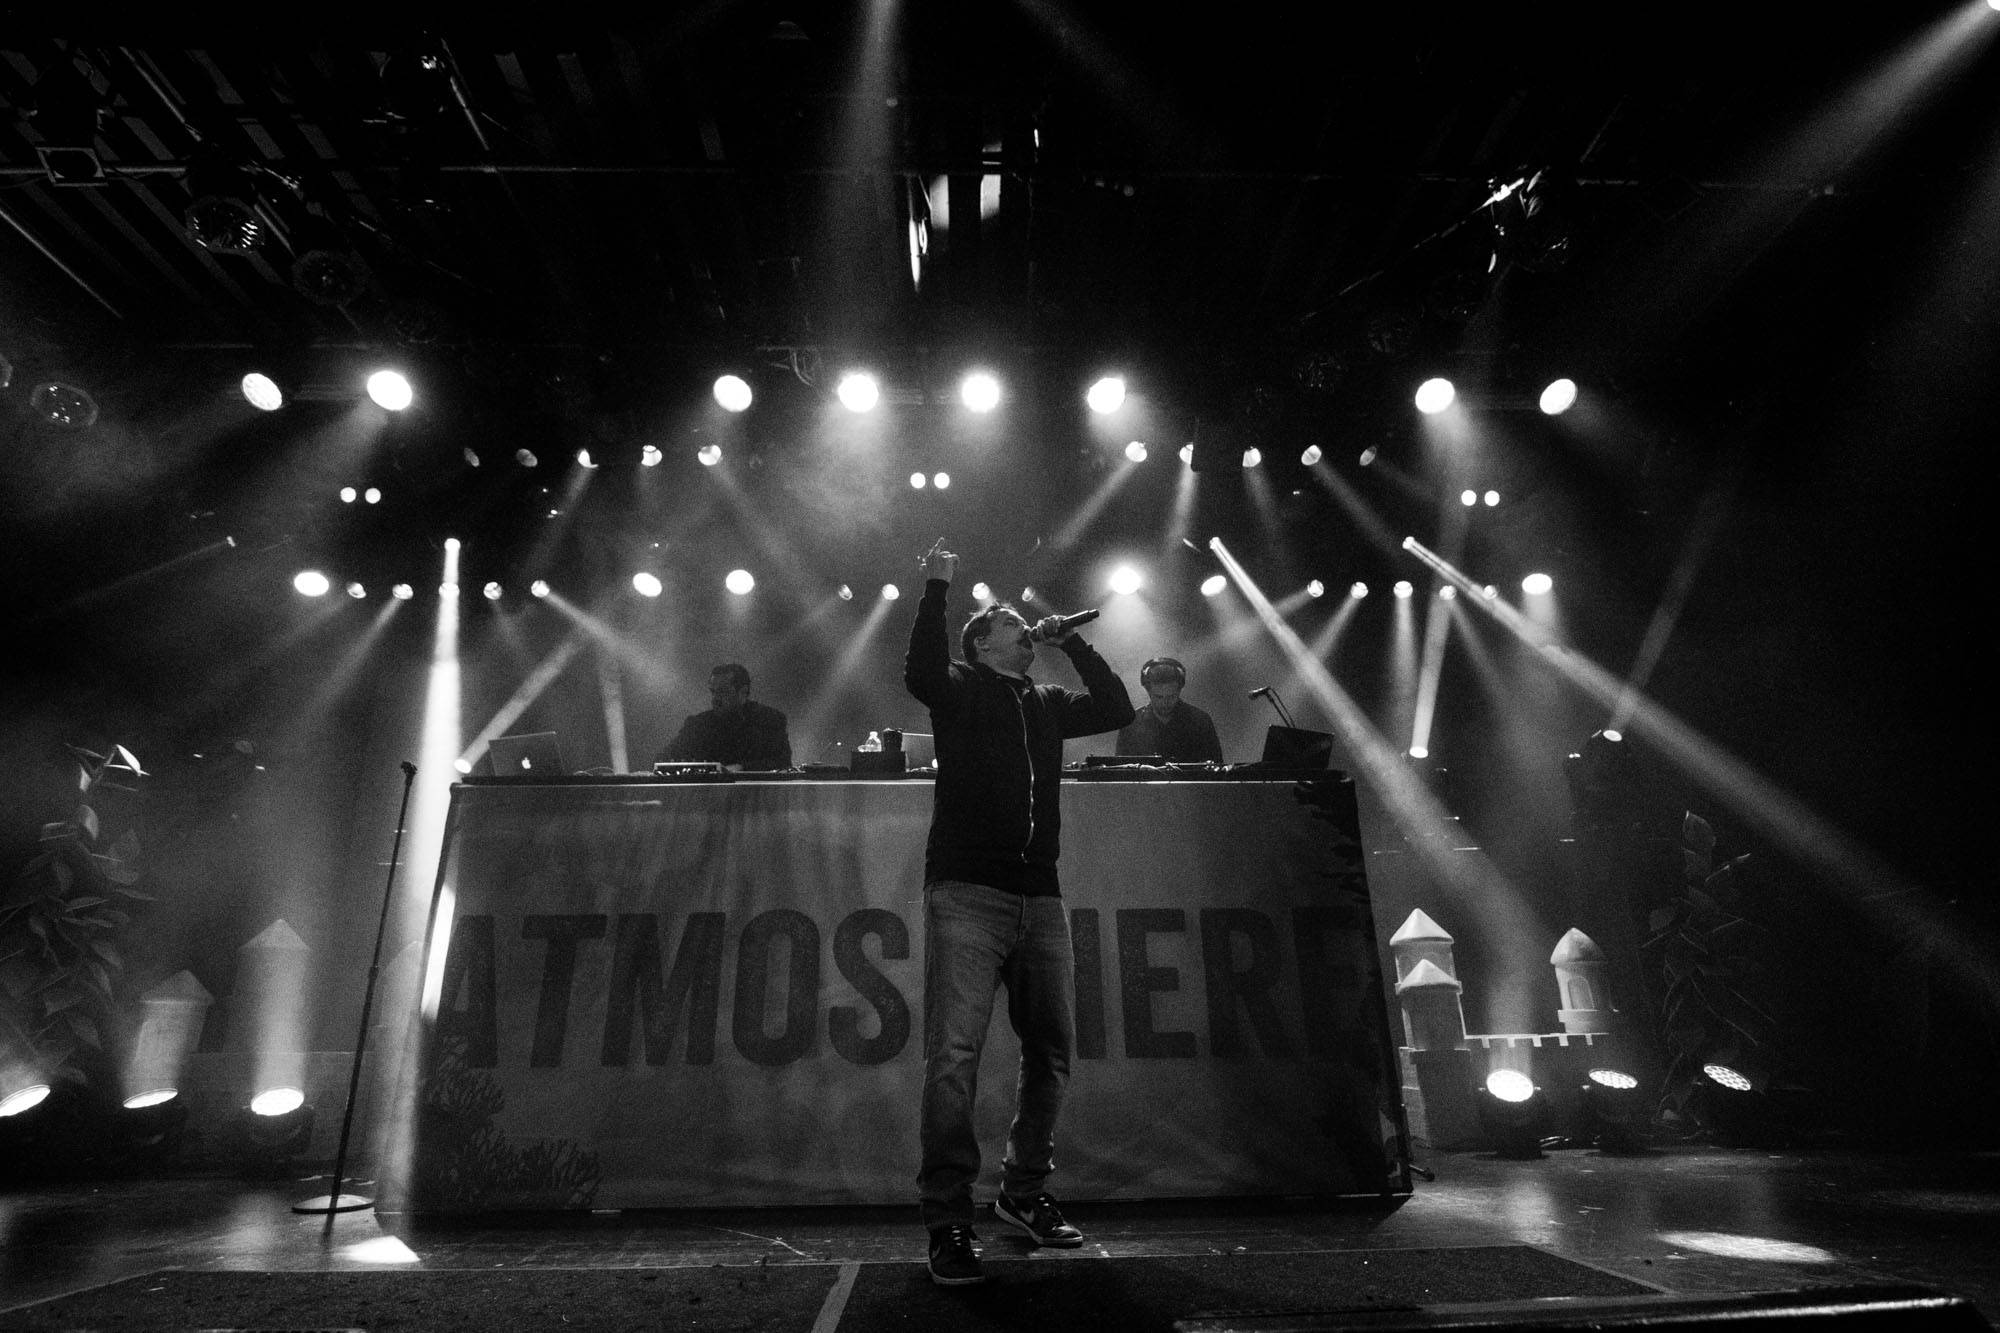 Atmosphere at the Commodore Ballroom, Vancouver, Sept 14 2016. Saman Shariati photo.